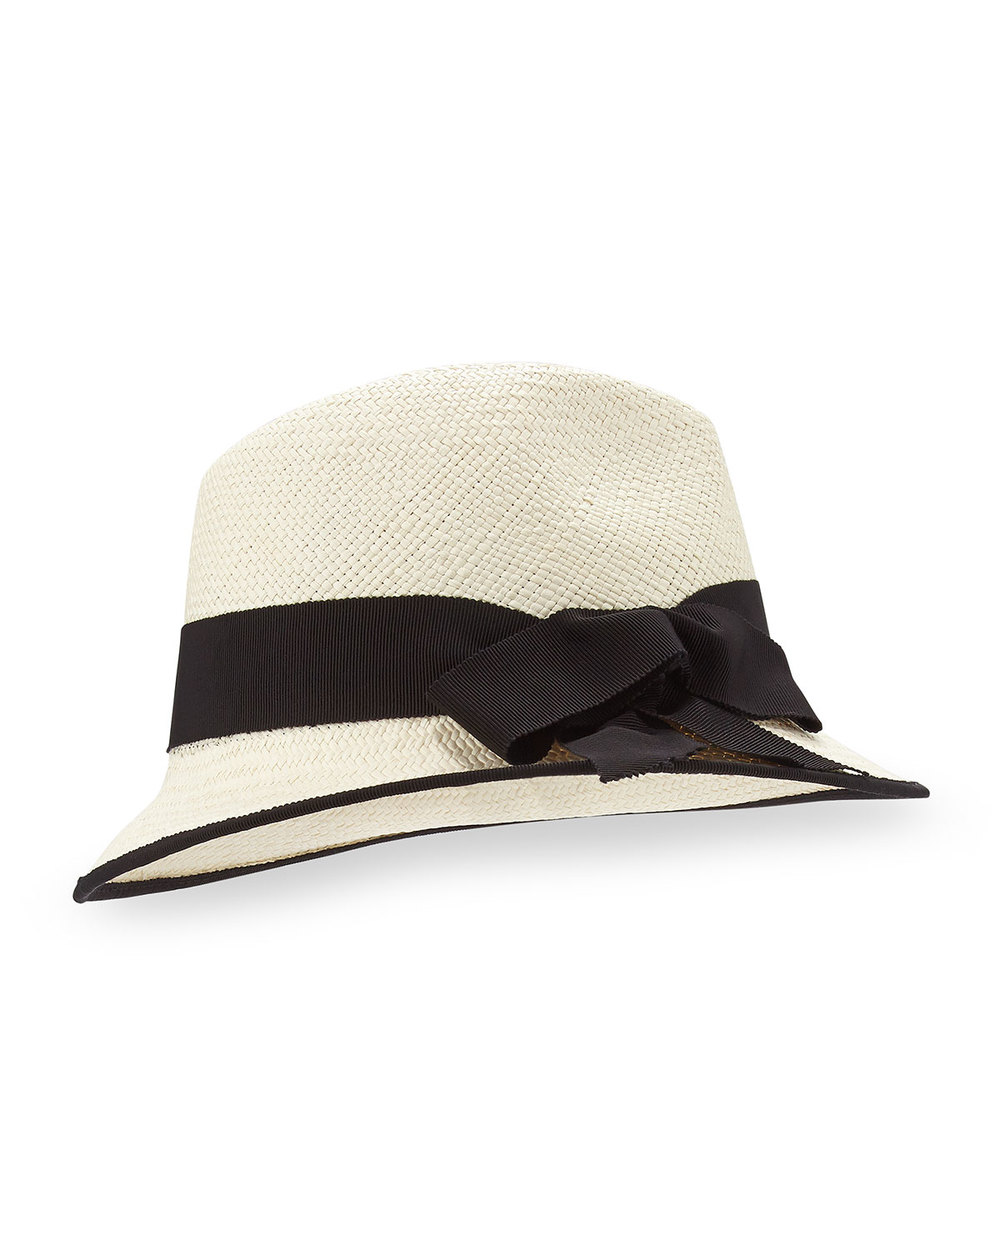 Inverni Straw Panama Hat, Natural/Black Inverni straw Panama hat. Contrast grosgrain ribbon trim with bow detail. Pinched crown. Partially downturn brim. Made in Italy.